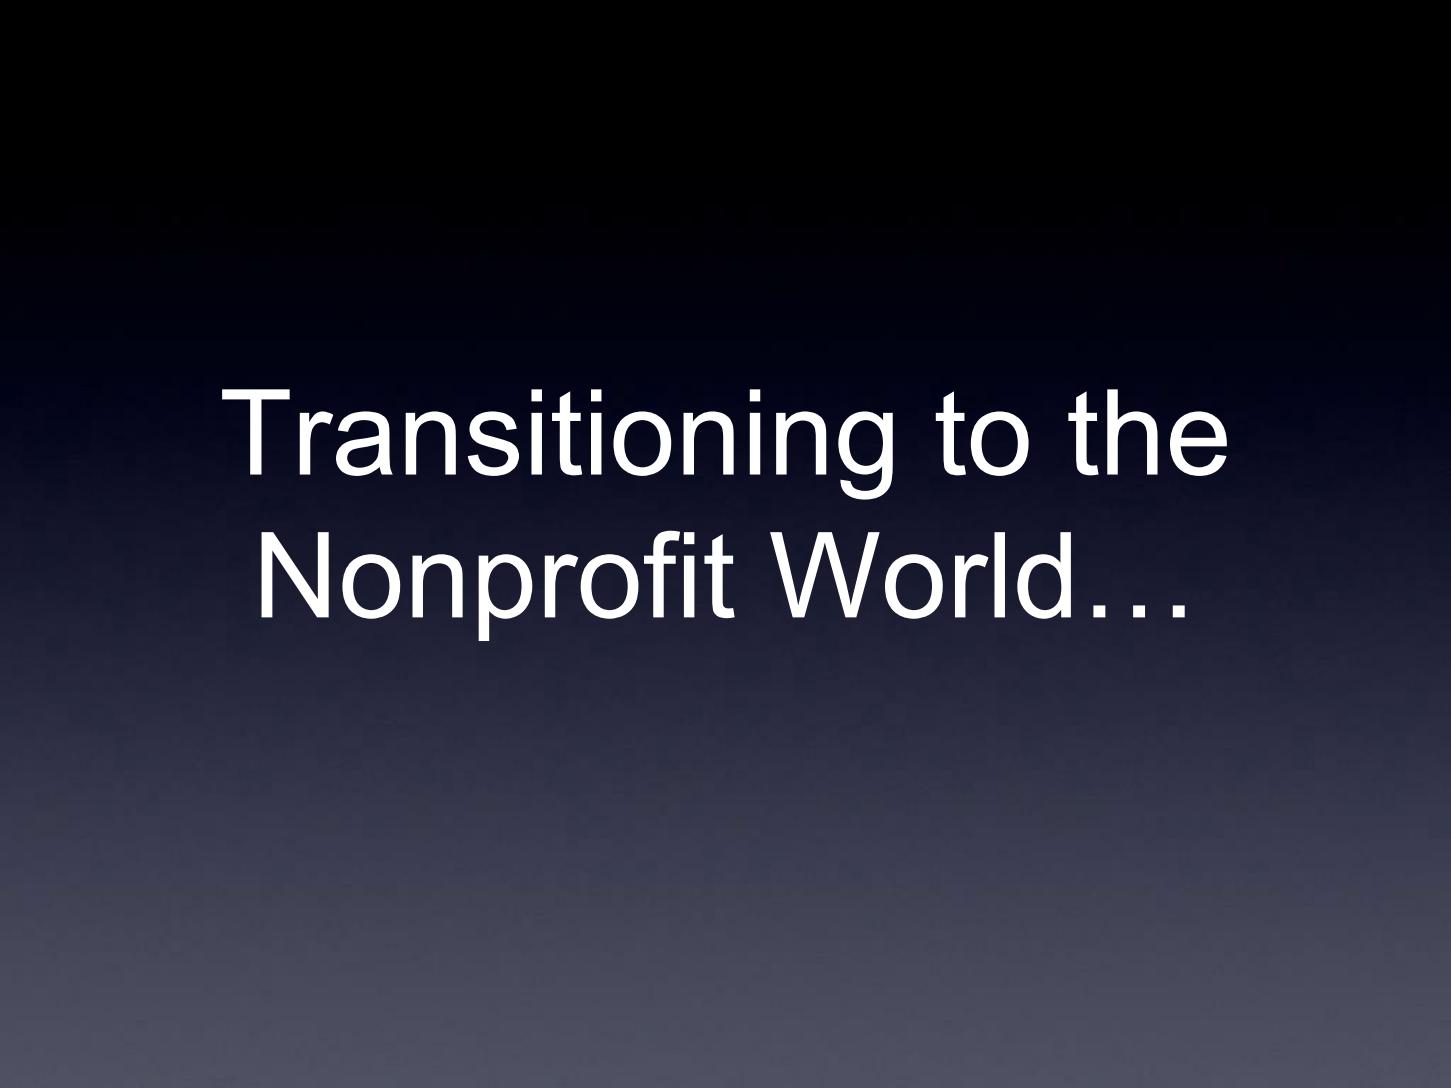 Transitioning to the Nonprofit World